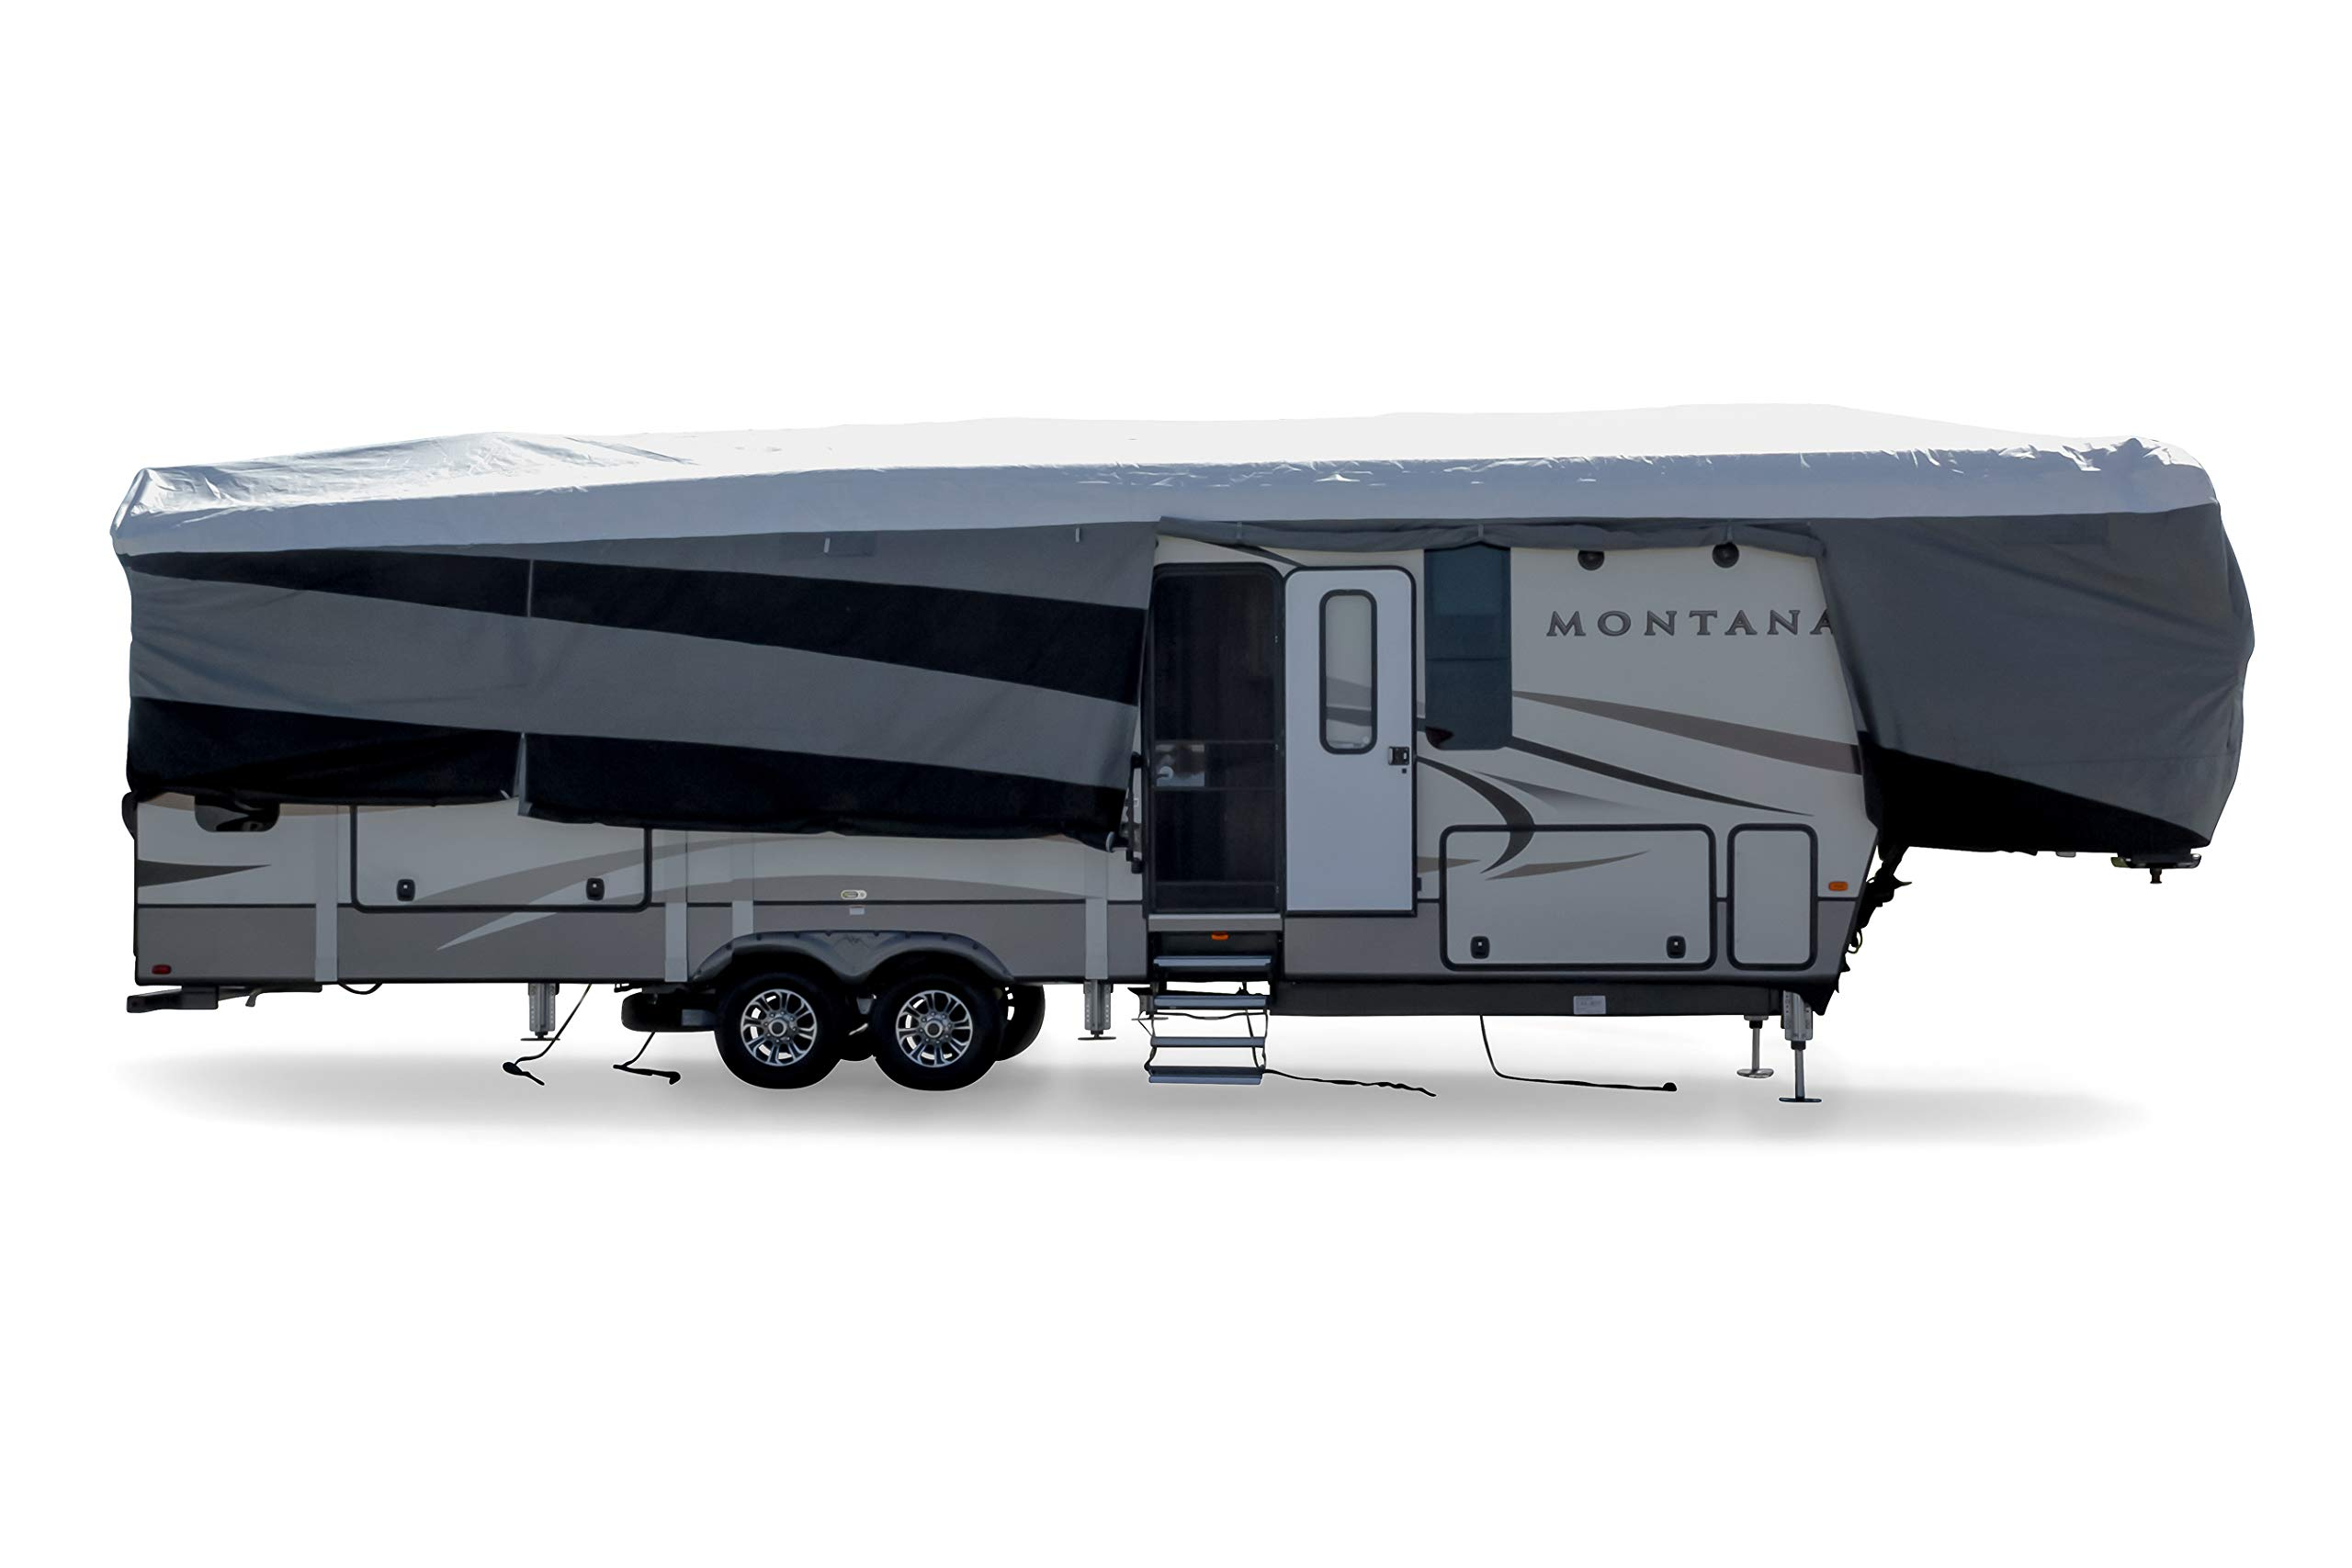 Camco ULTRAGuard Supreme RV Cover-Extremely Durable Design Fits Fifth Wheel Trailers 34' -37', Weatherproof with UV Protection and Dupont Tyvek Top (56150) by Camco (Image #4)